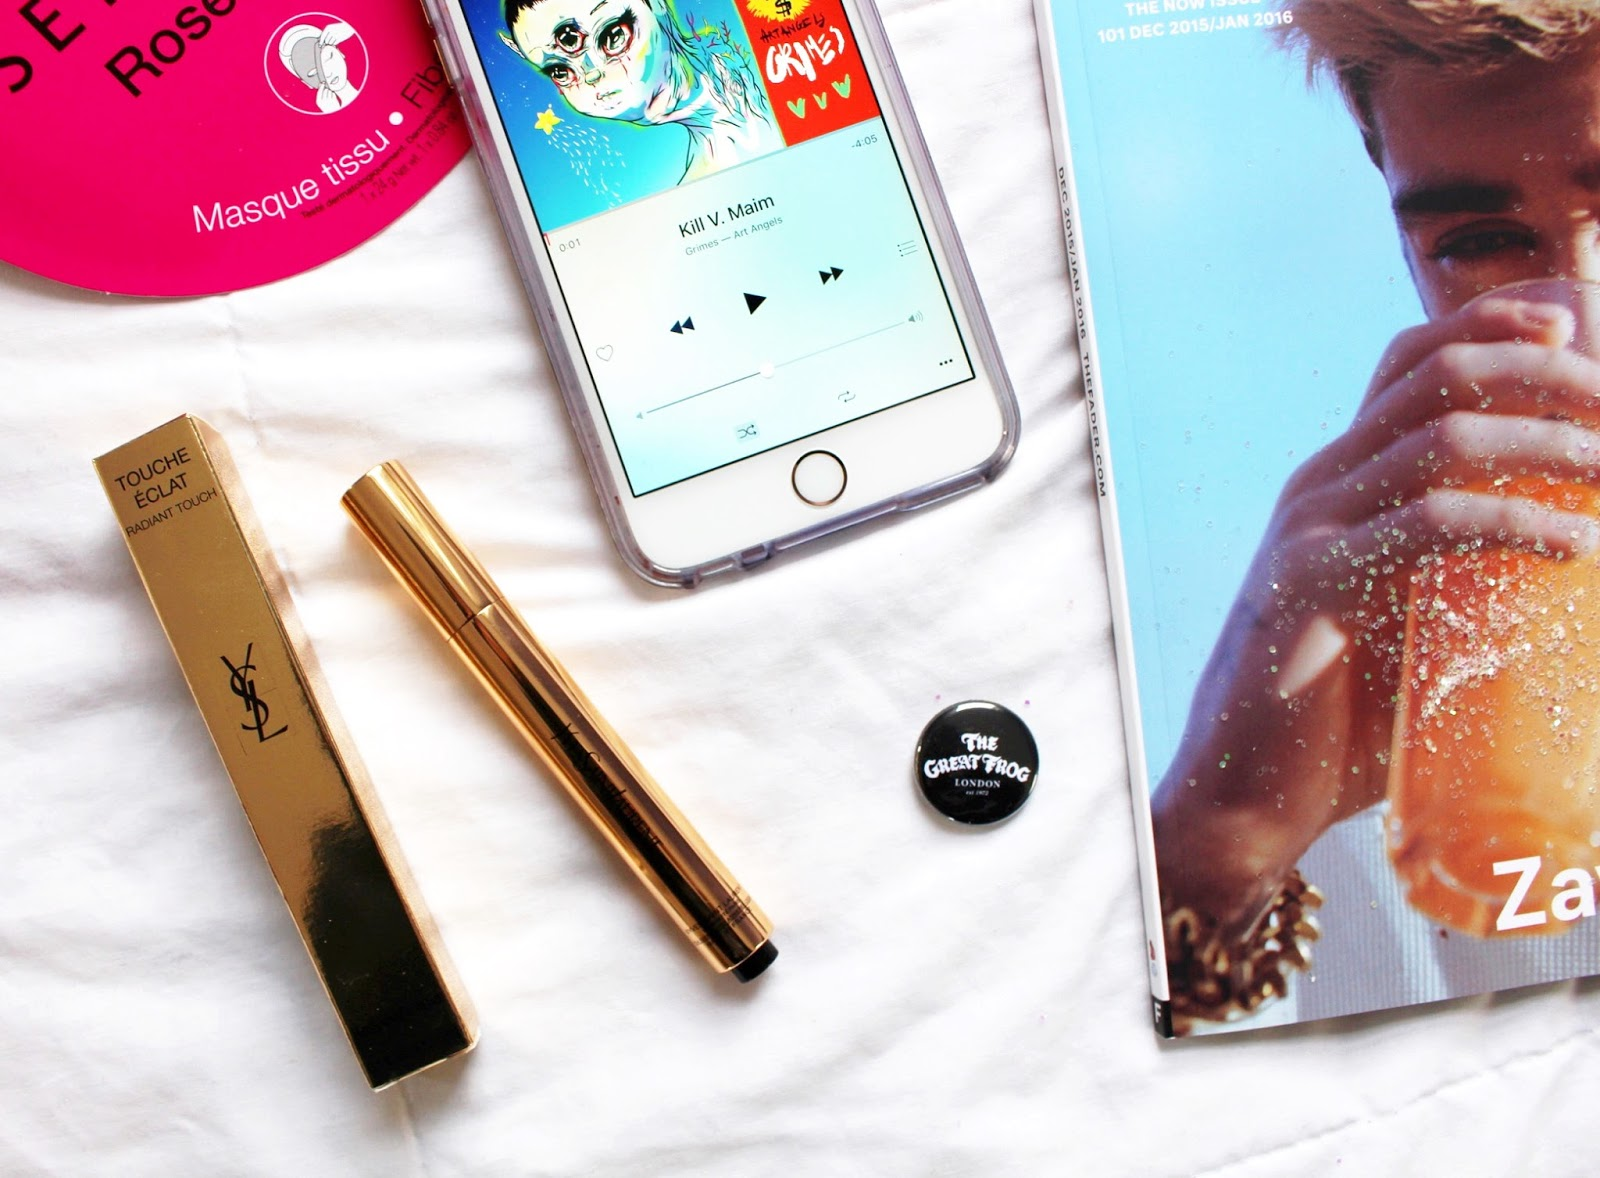 ysl touche eclat radiant touch, zayn malik the fader, grimes art angels